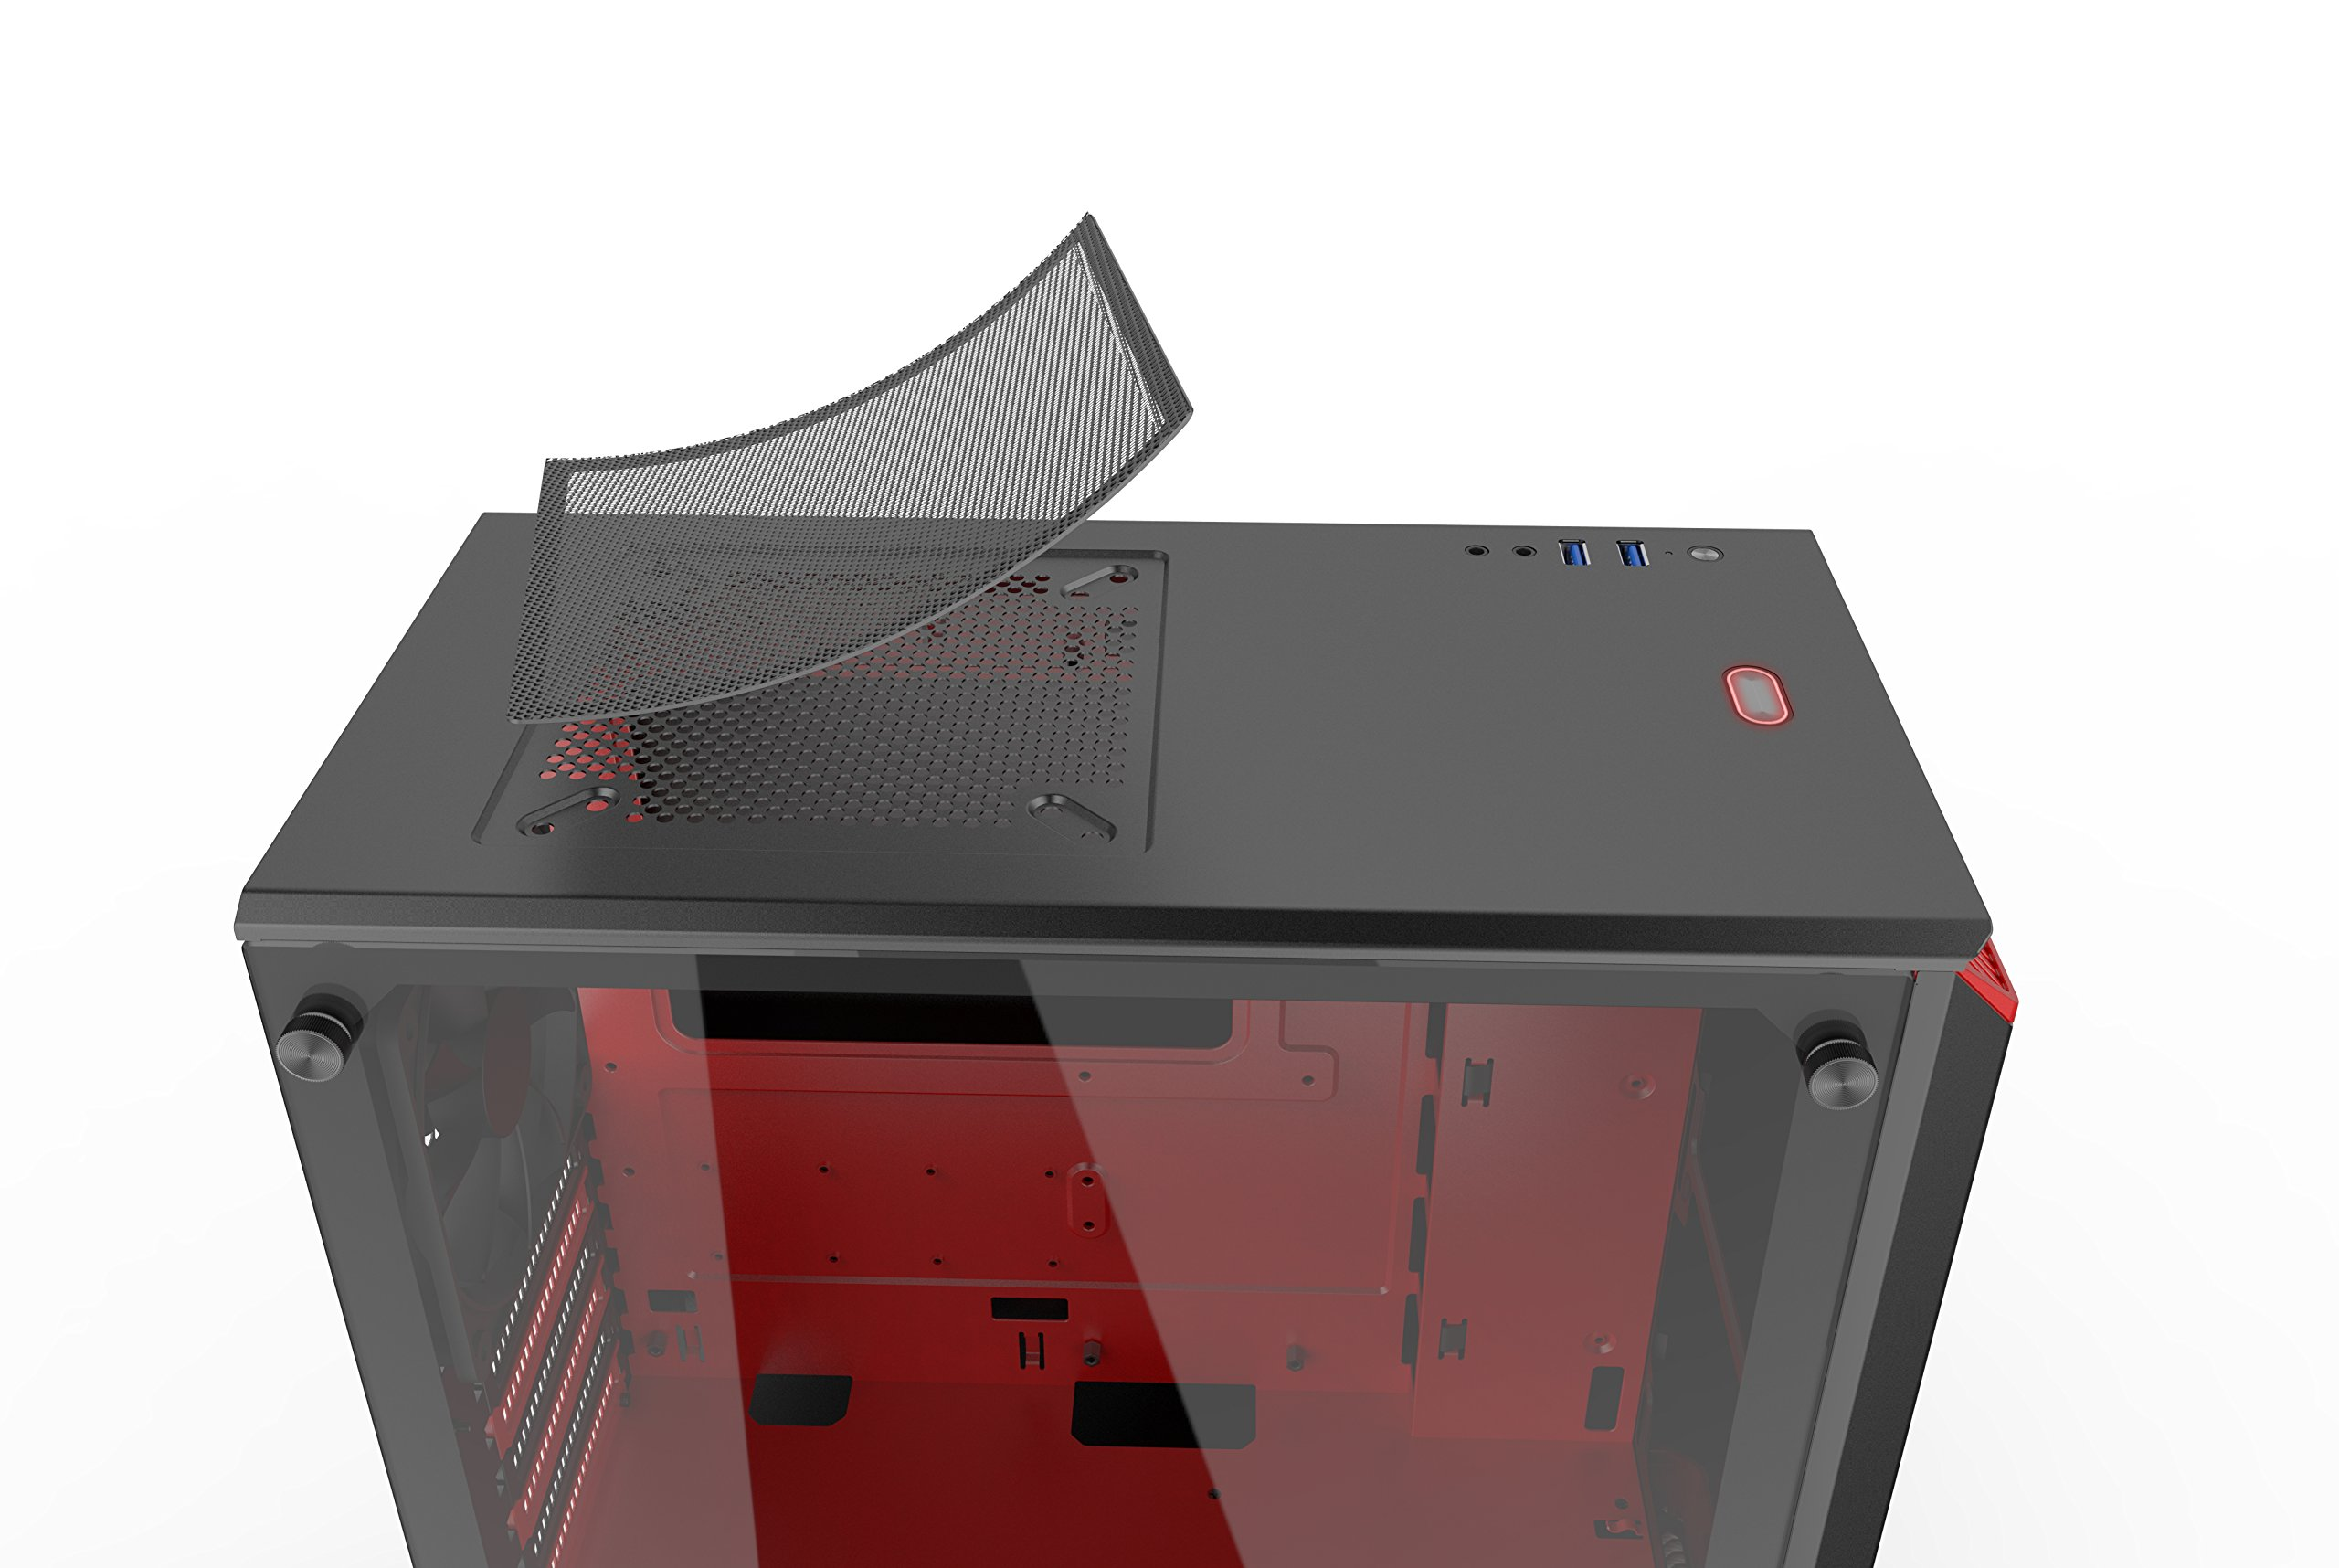 Phanteks PH-EC300PTG_BR Eclipse P300 Tempered Glass Steel ATX Mid Tower Case Black/Red by Phanteks (Image #7)